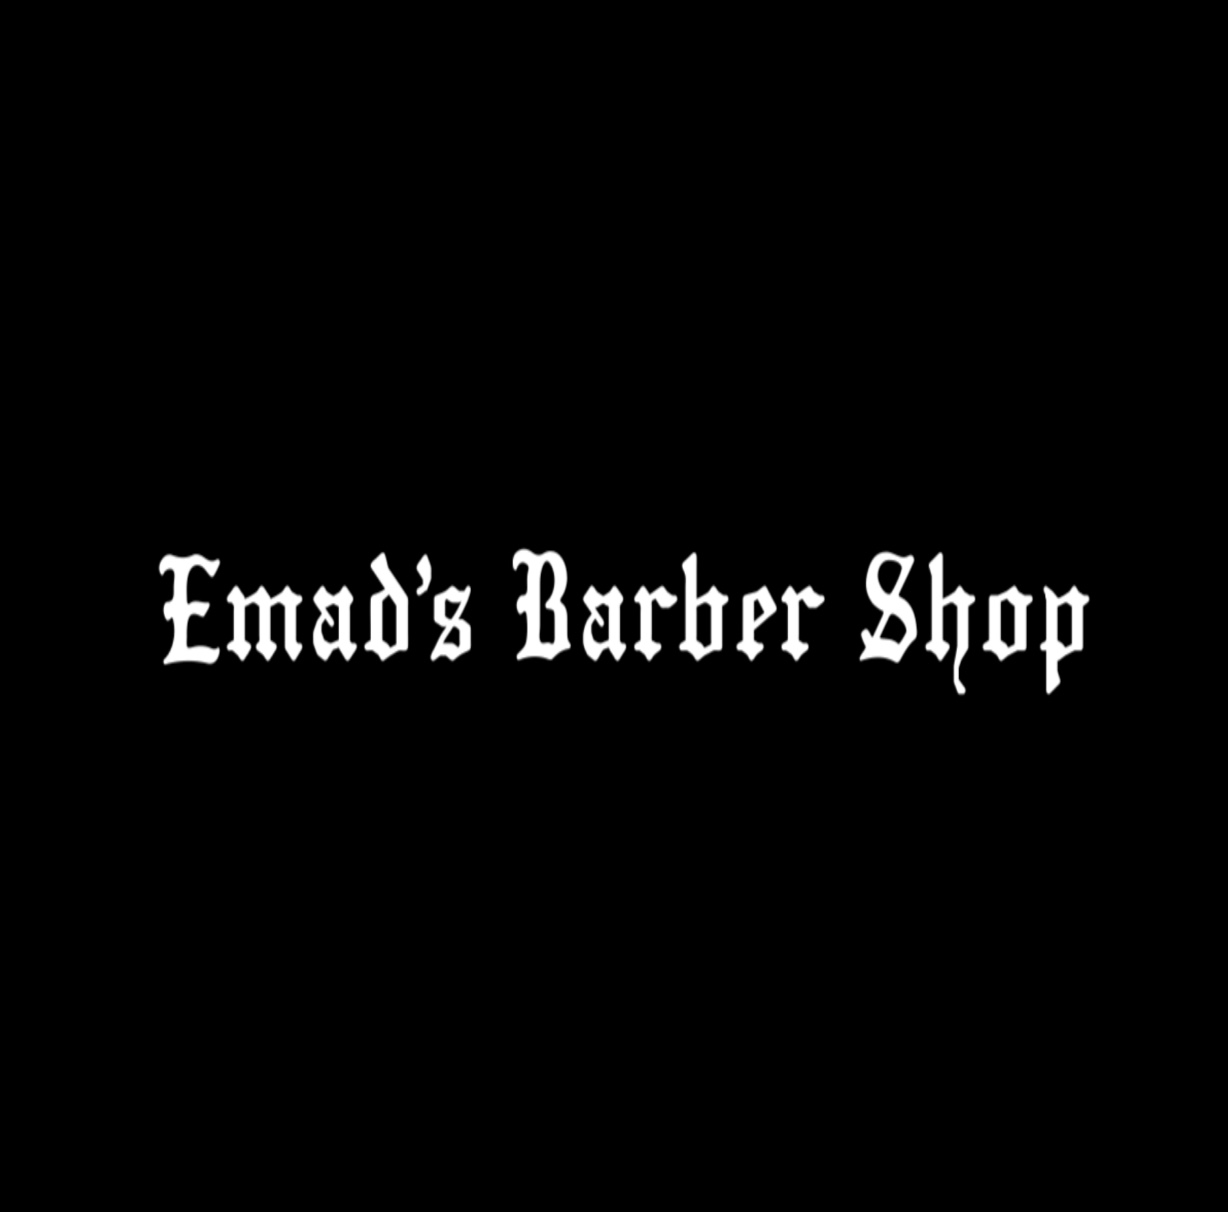 Emad's Barber Shop